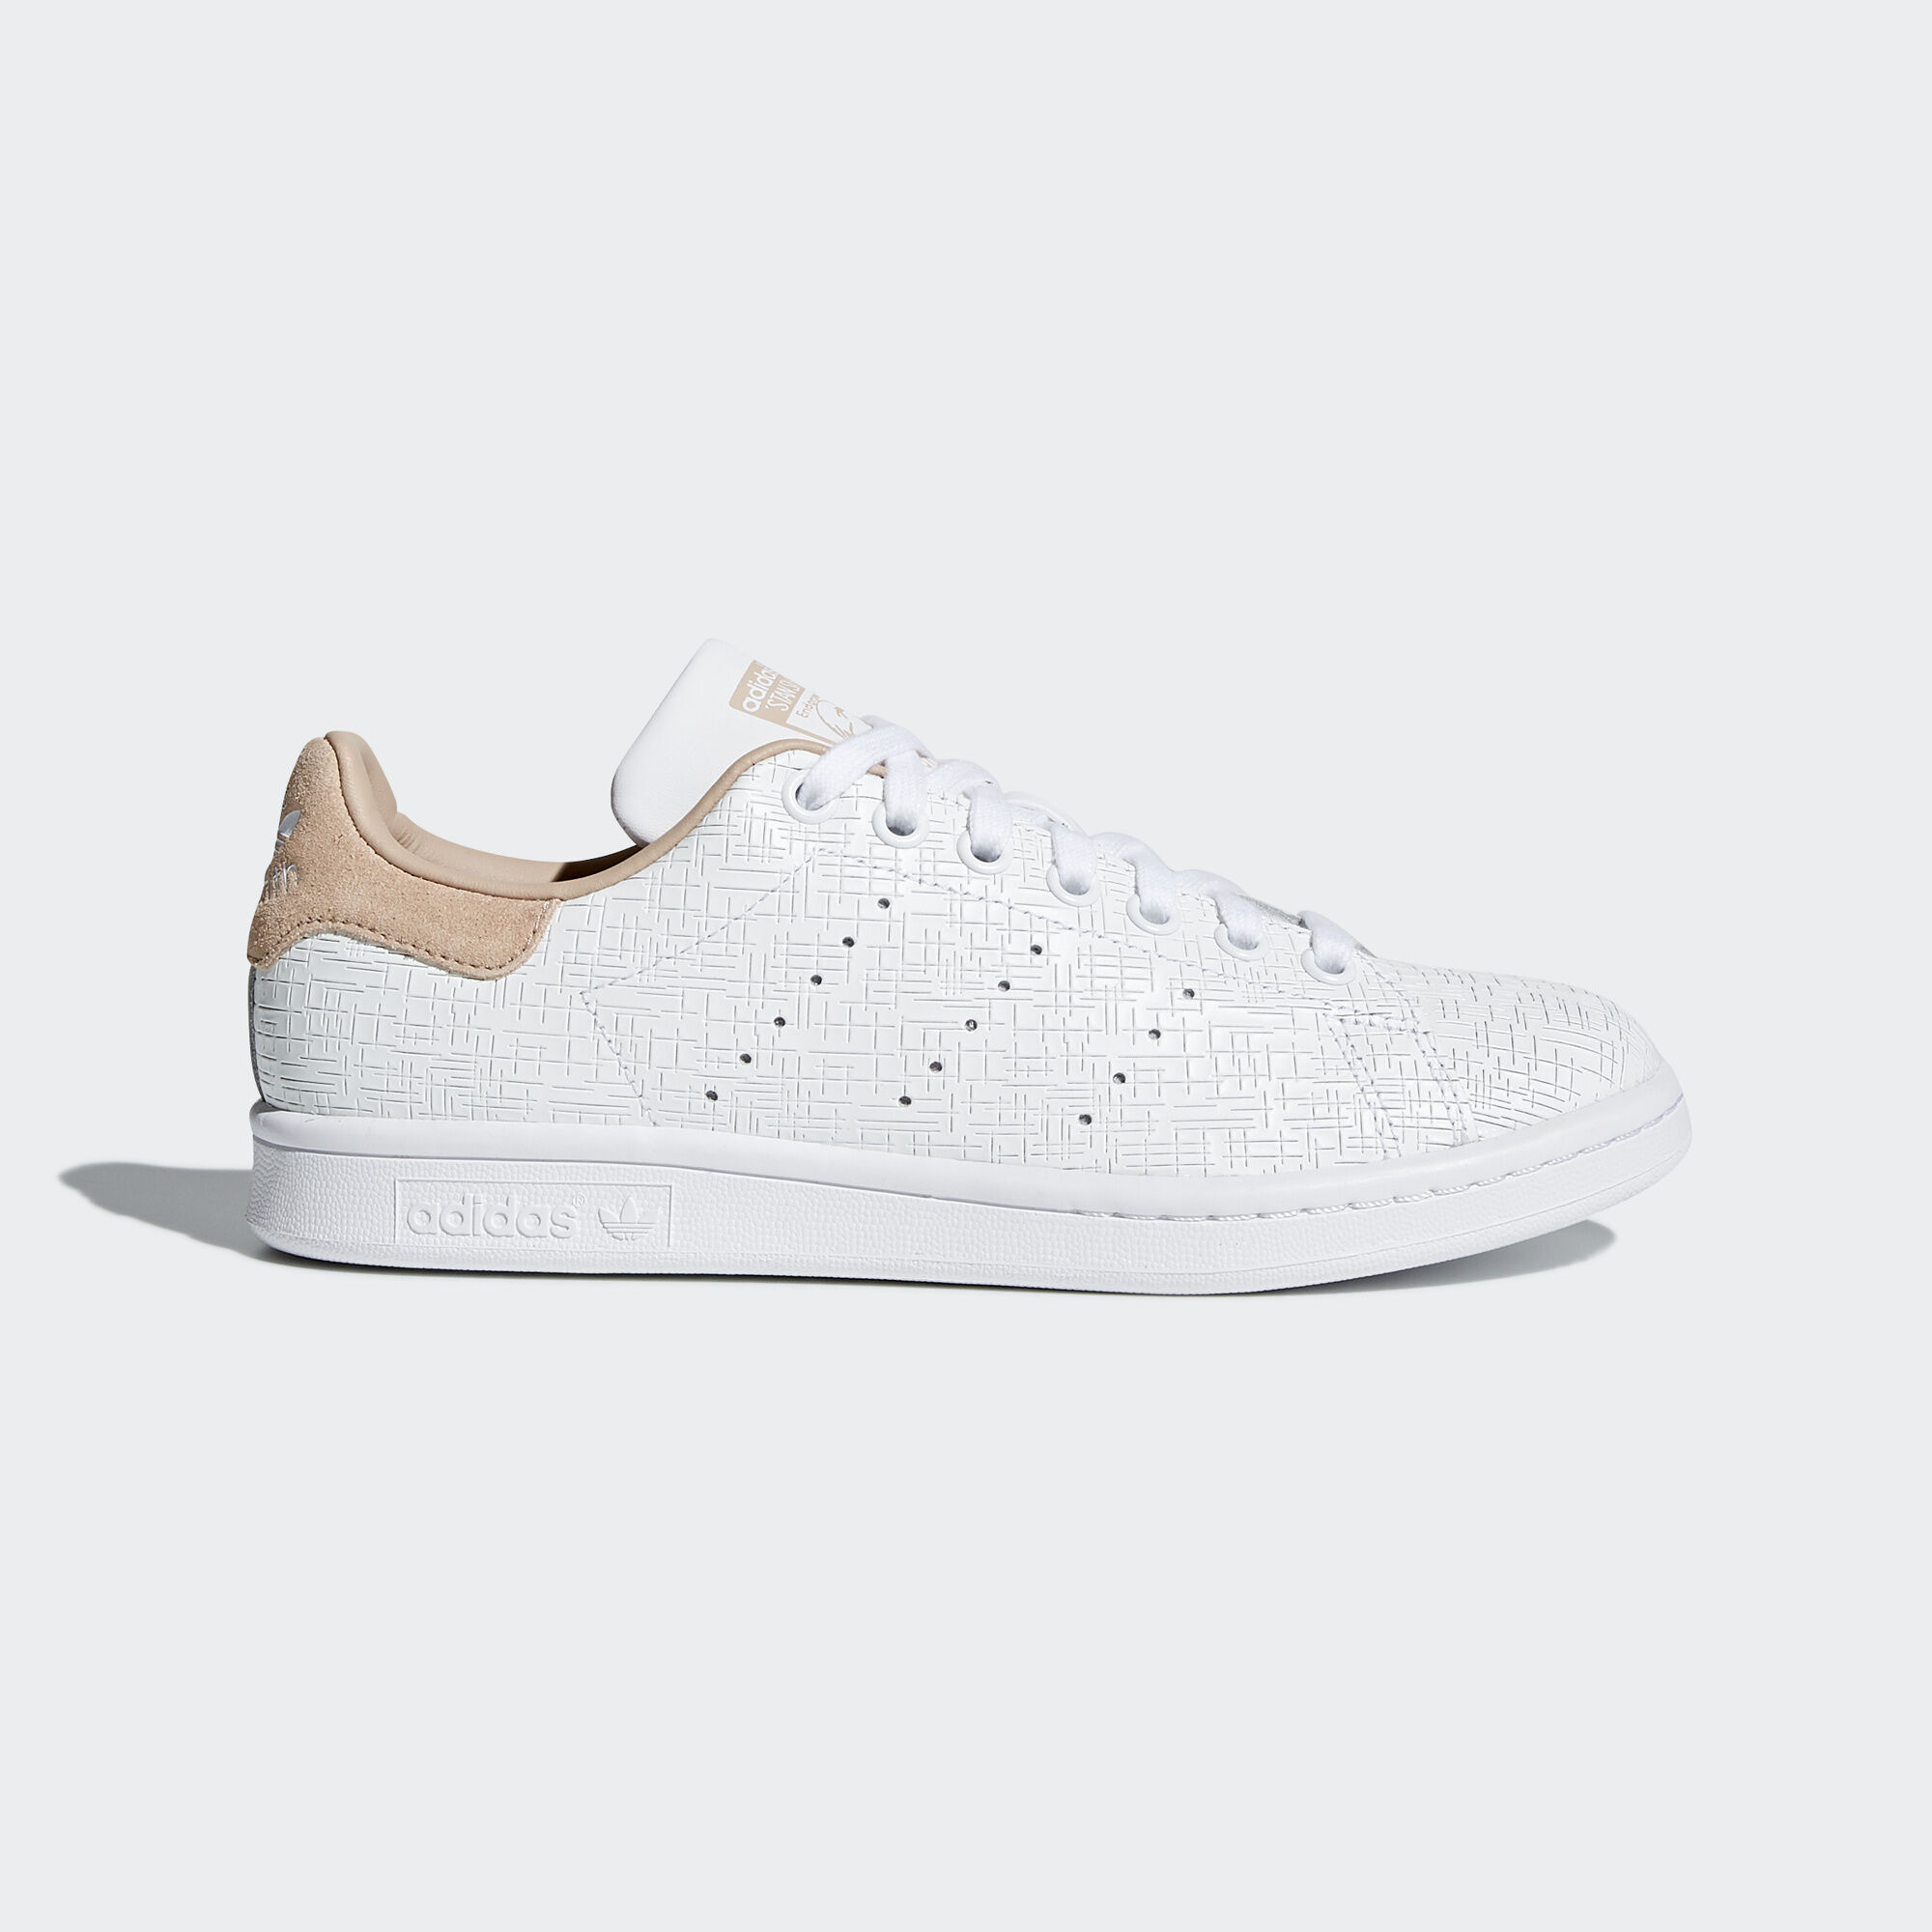 adidas stan smith shoes white adidas regional. Black Bedroom Furniture Sets. Home Design Ideas